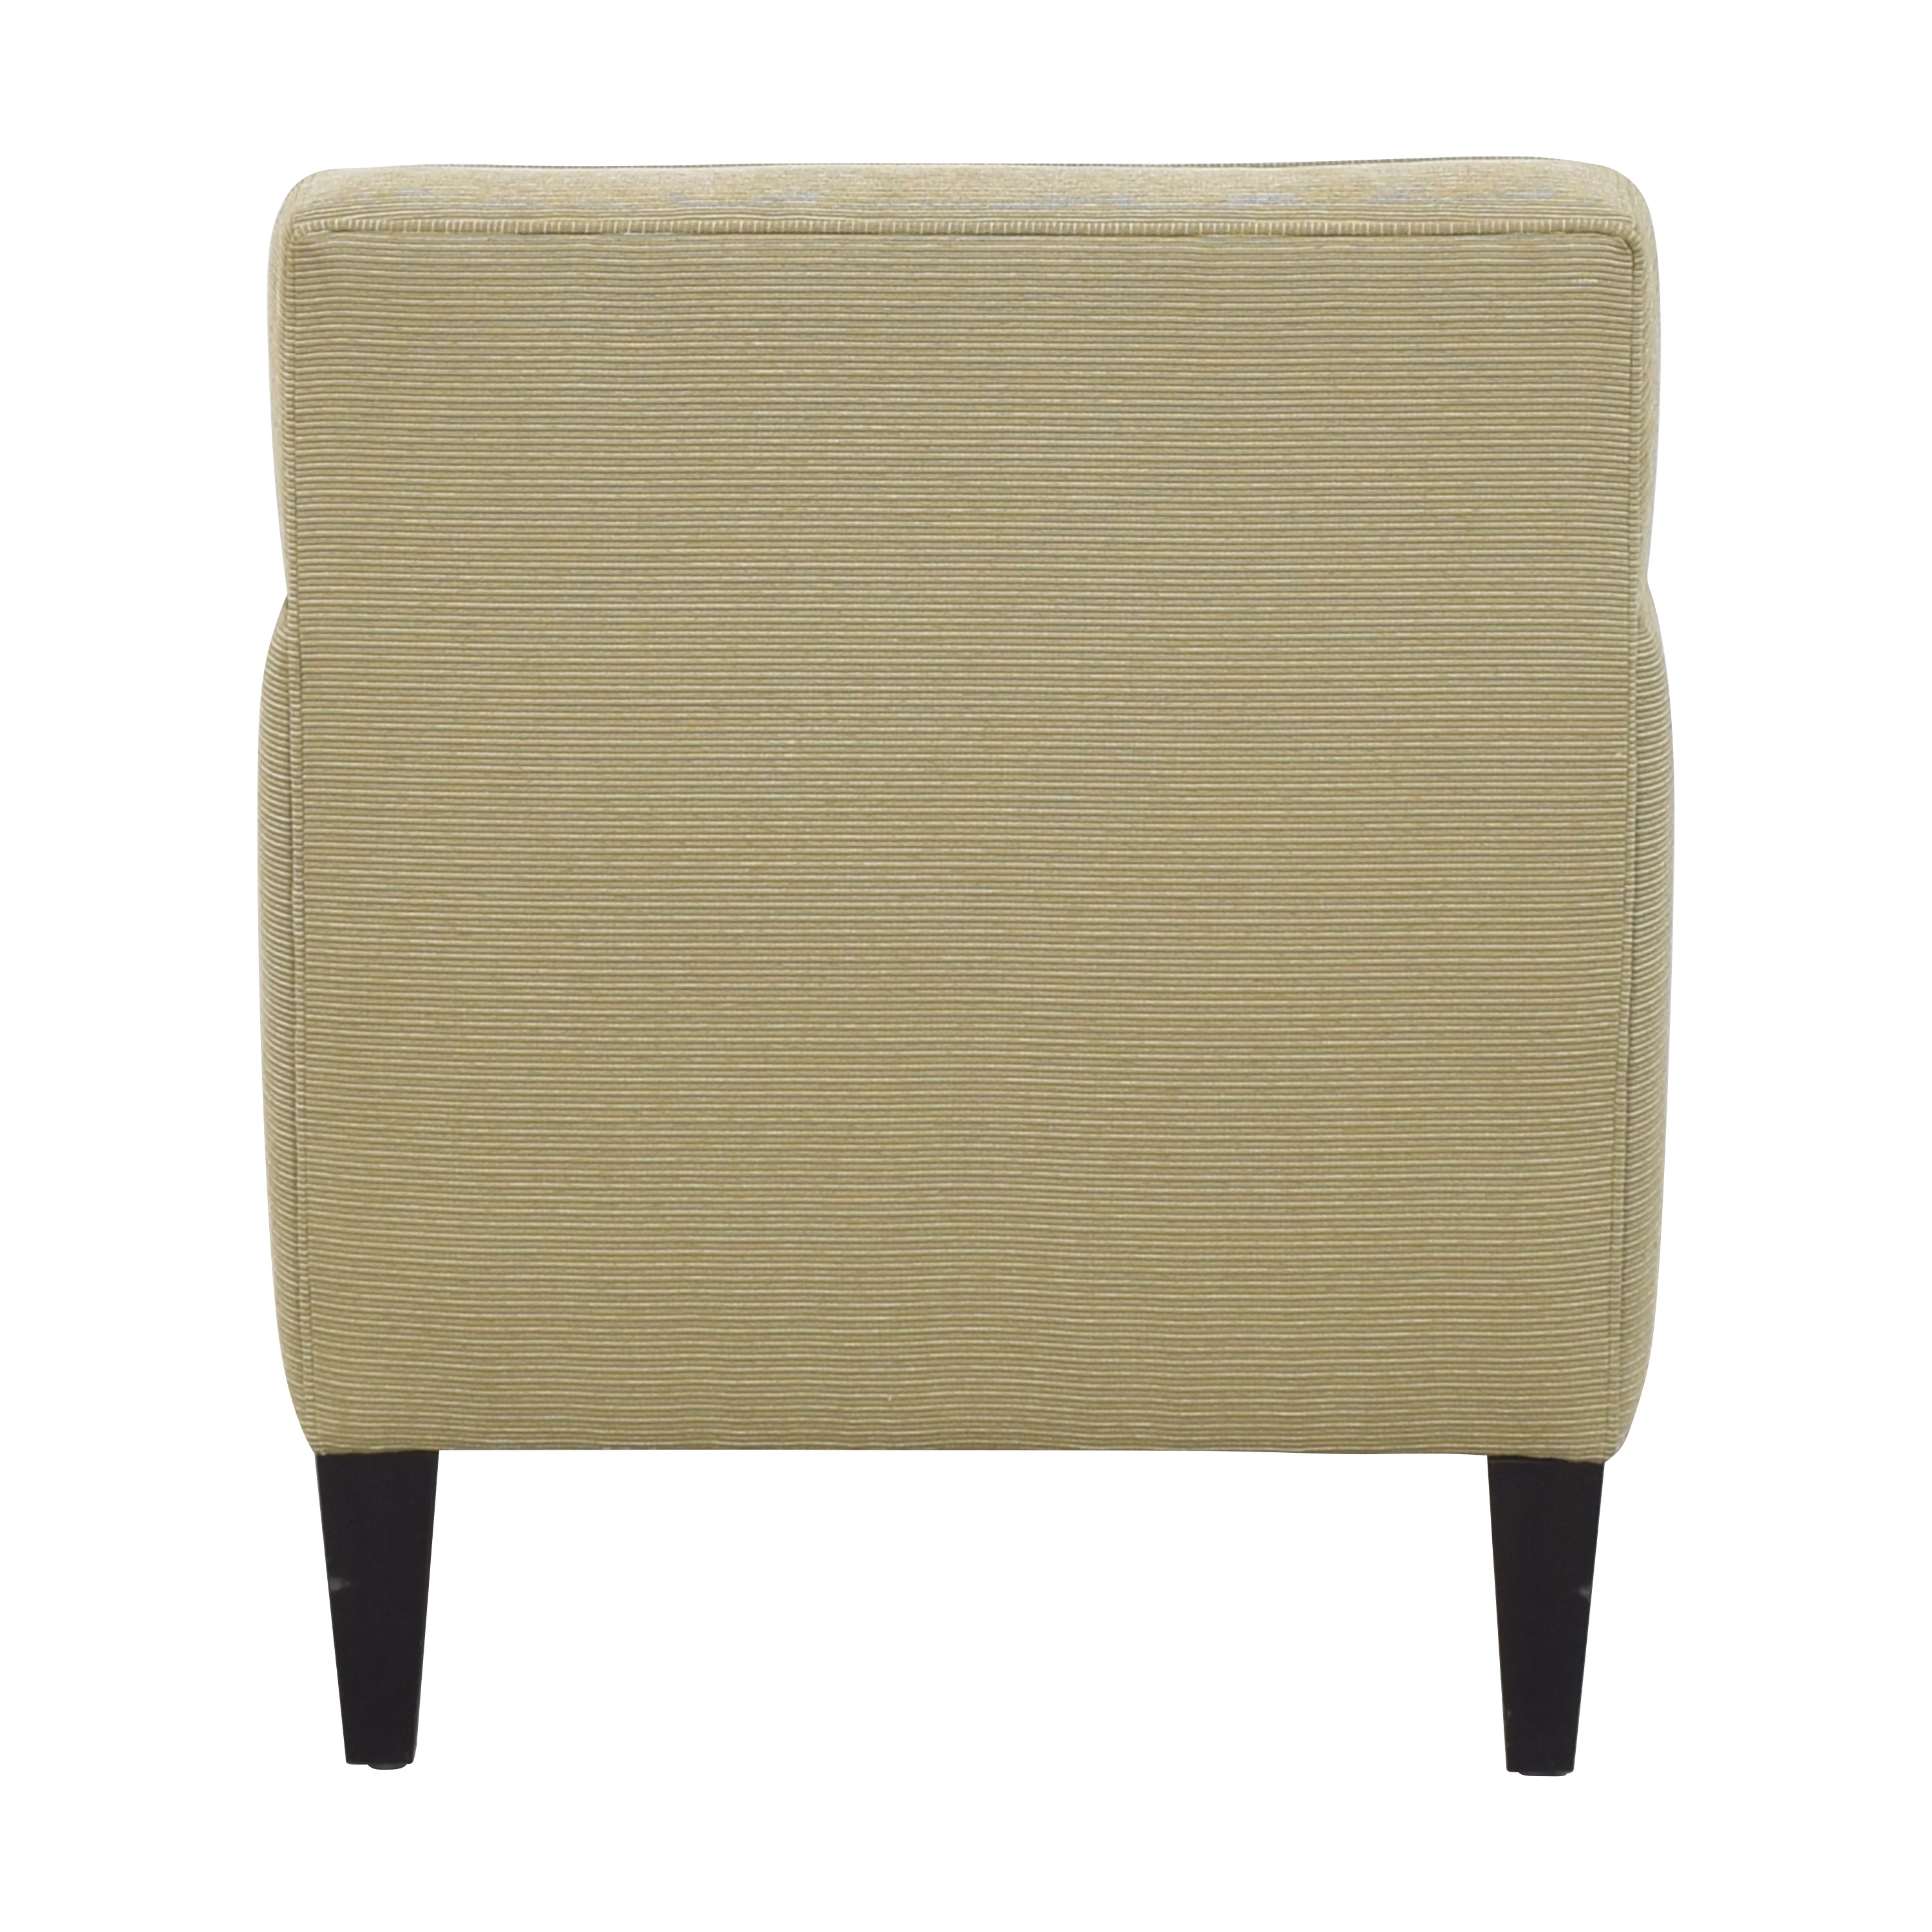 Crate & Barrel Crate & Barrel Tight Back Accent Chair price